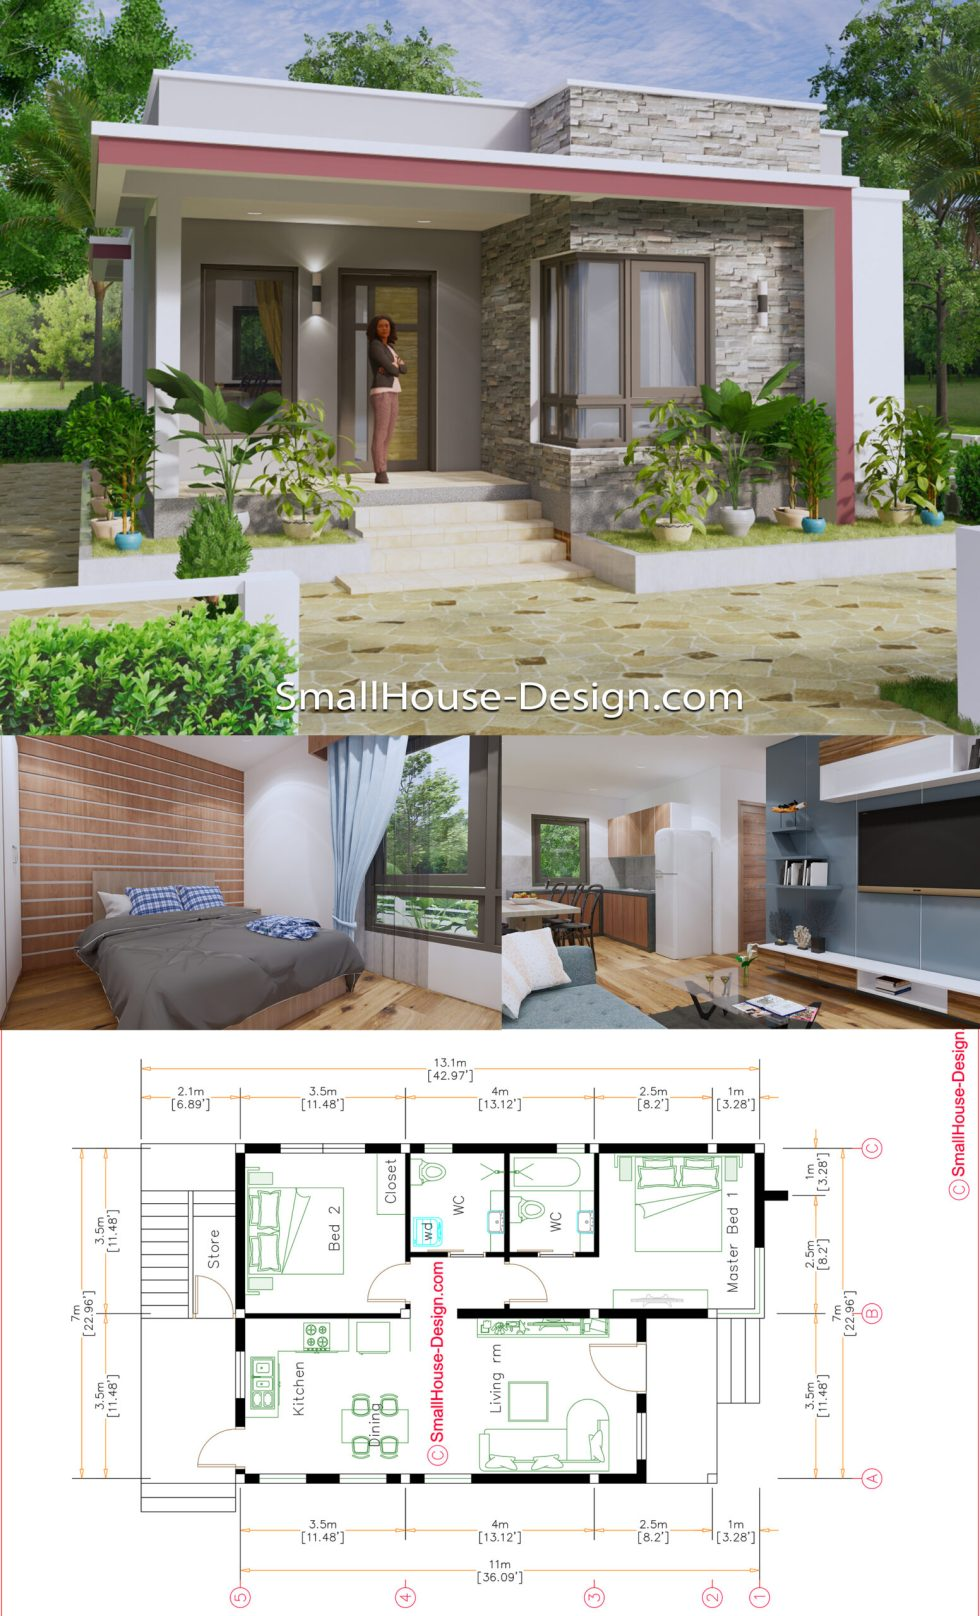 Small House Plans 7x11 Meters 23x36 Feet Terrace Roof Full Plans pin